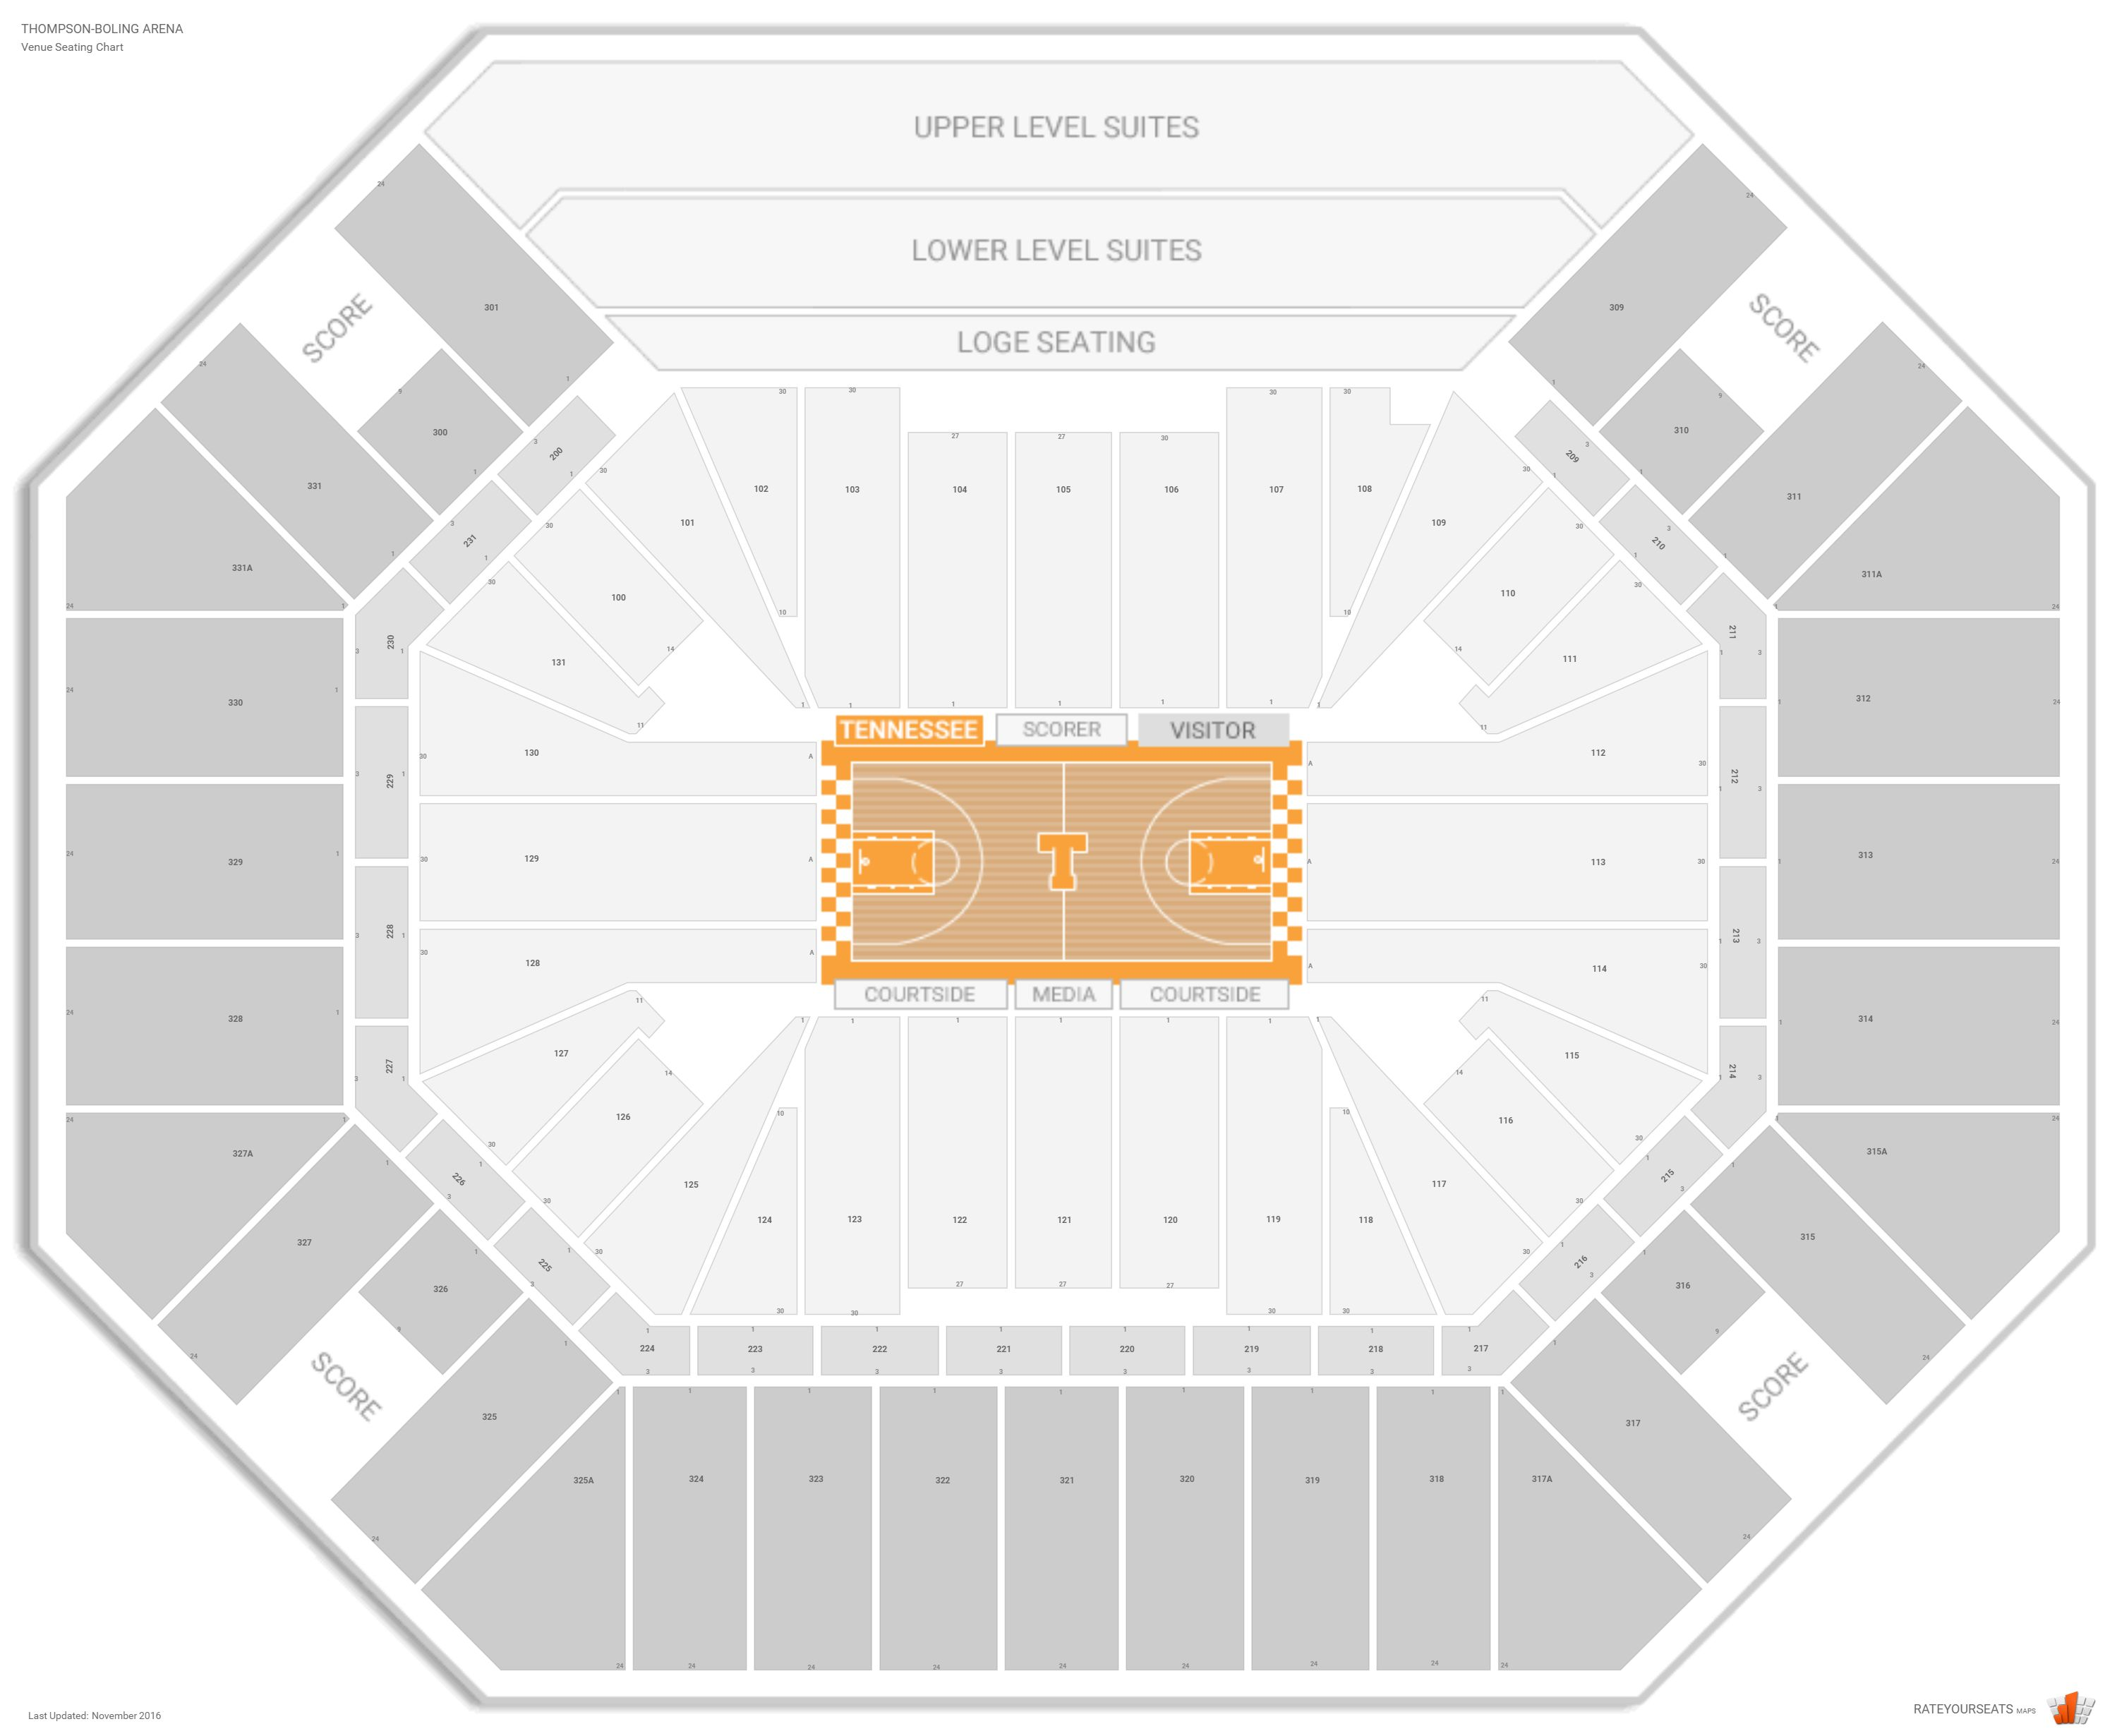 Thompson boling arena tennessee seating guide rateyourseats com